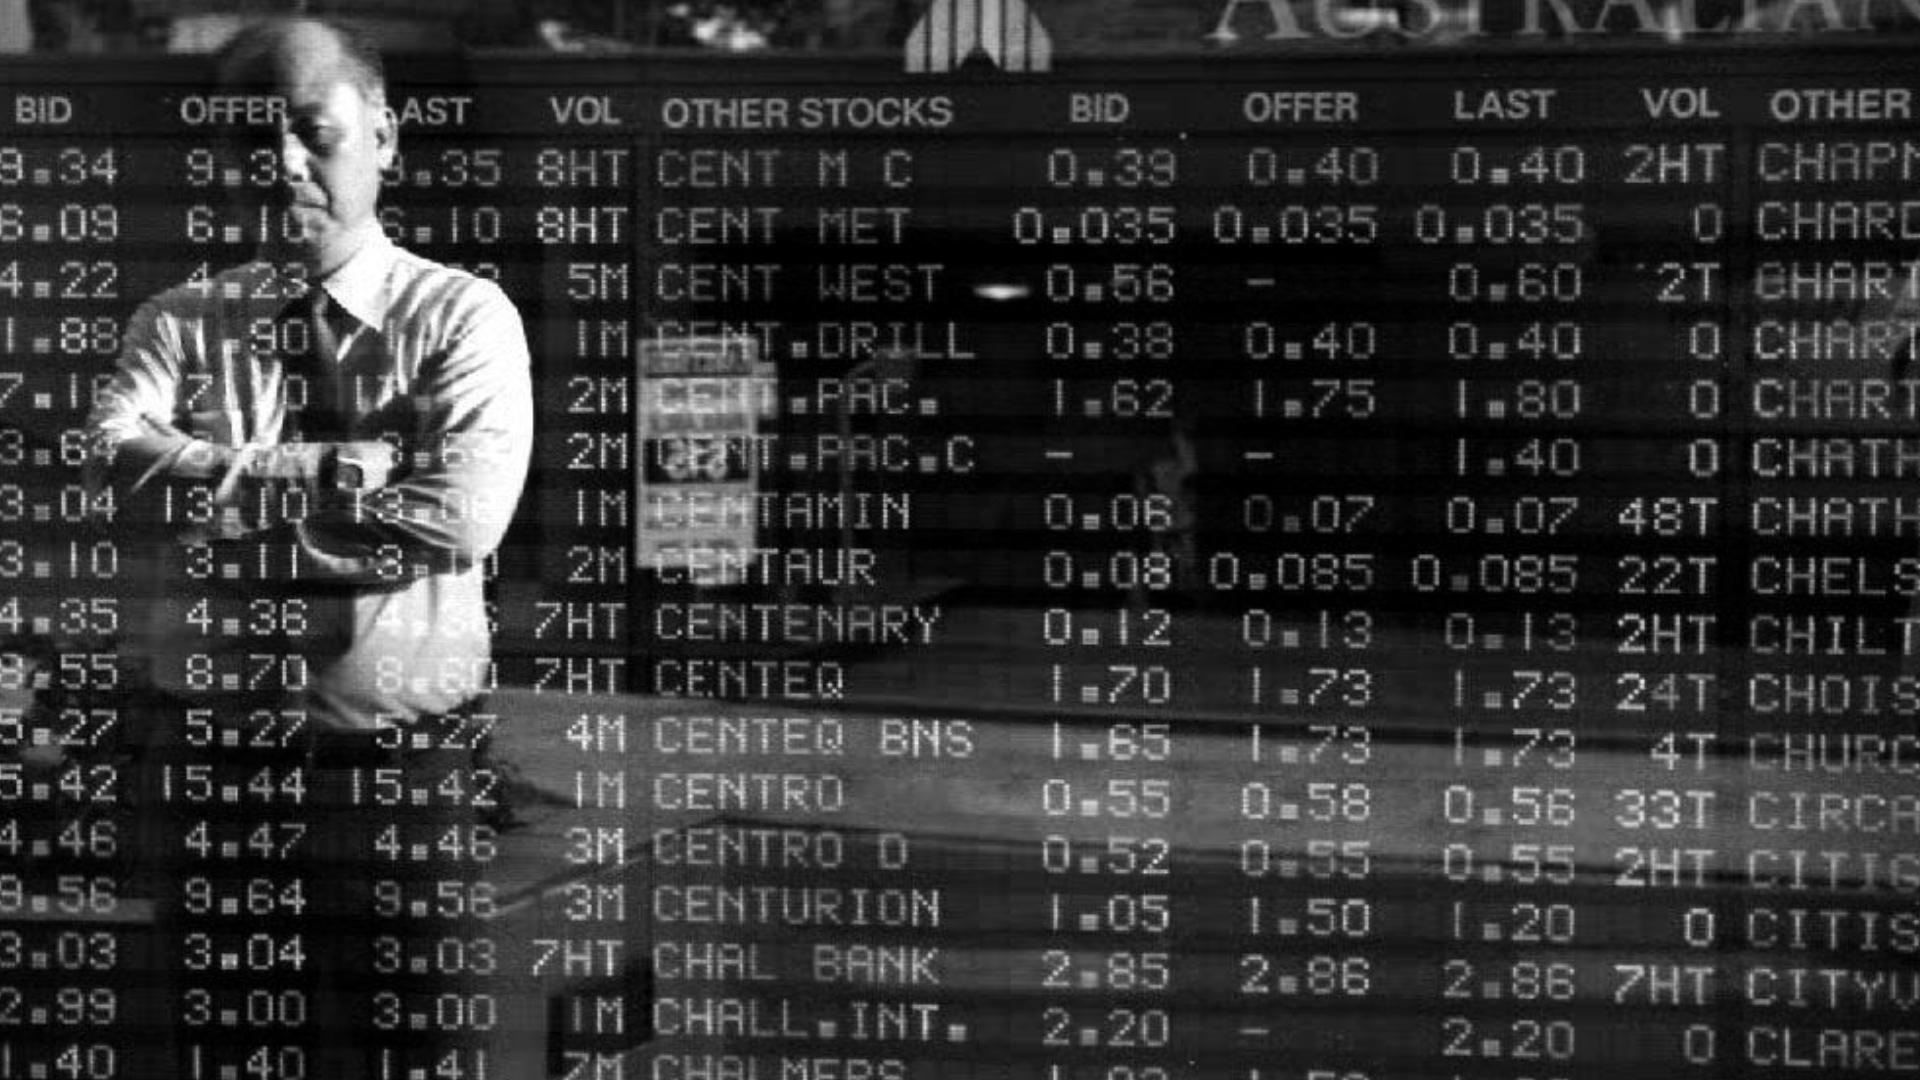 flashback: black monday: the stock market crash of 1987